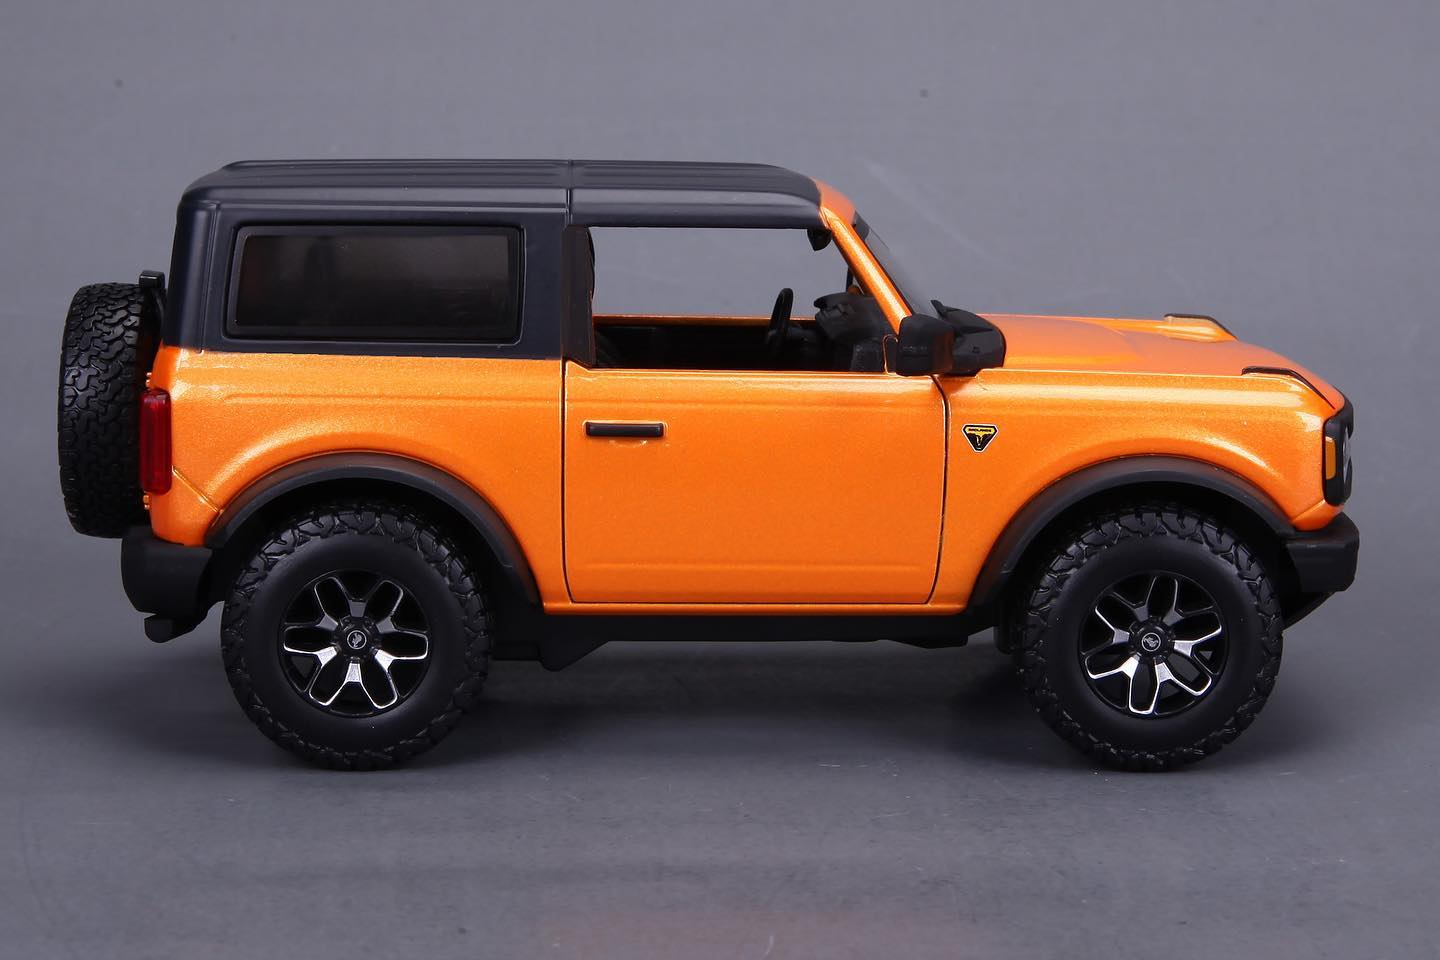 Maisto Teases Area 51 and Cyber Orange 2021 Ford Broncos ...